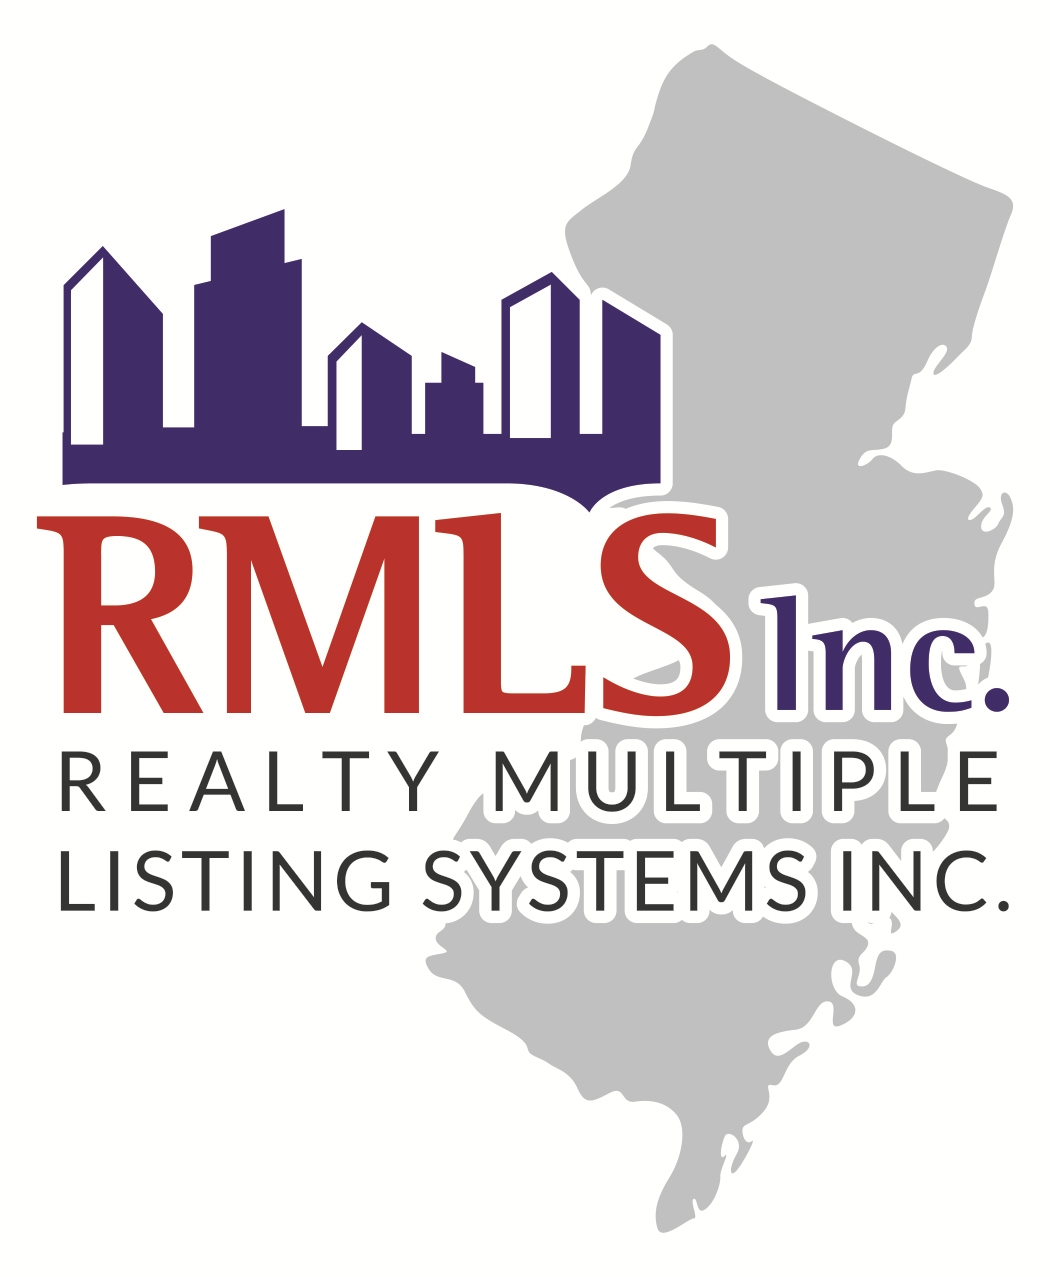 www.mlsguide.com: Contact broker about this listing